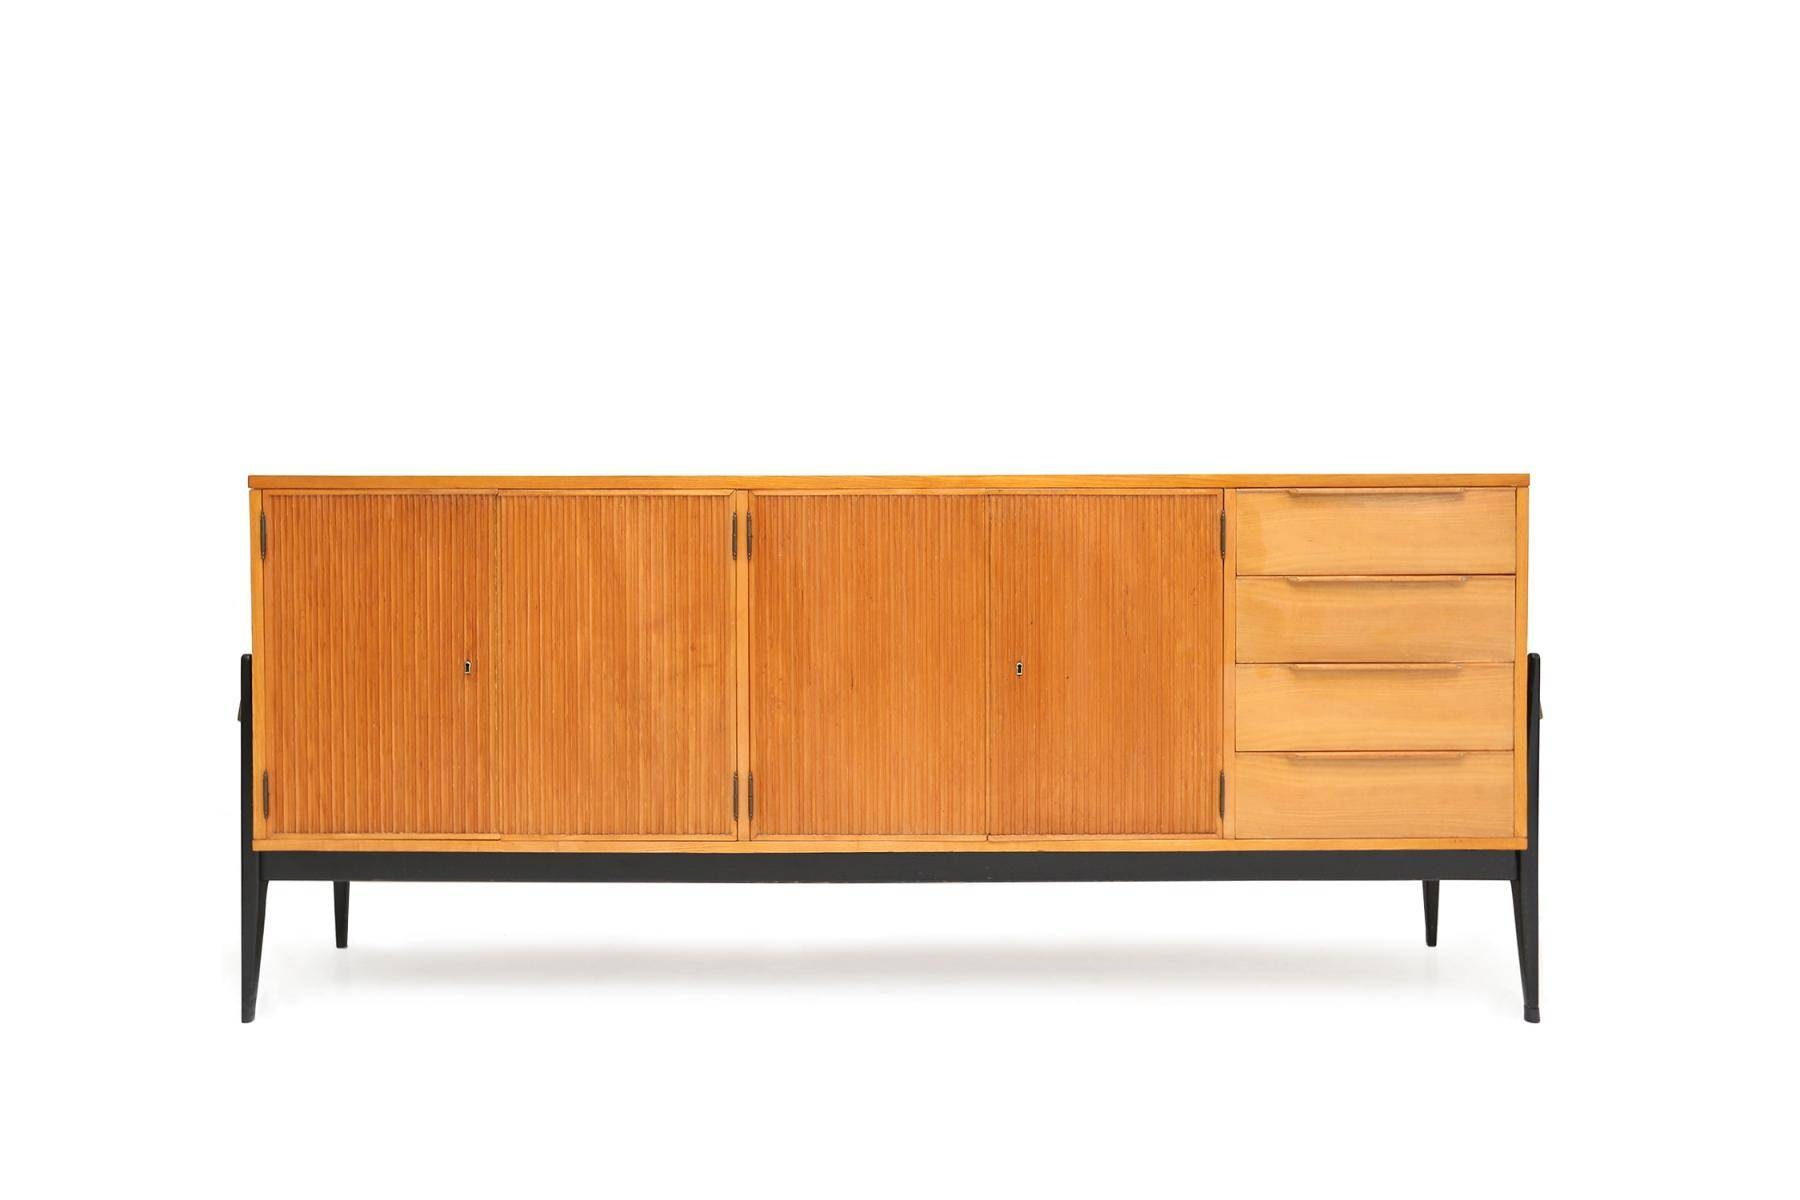 Belgian Wooden Sideboard For Sale At Pamono Intended For Sideboard For Sale (#8 of 20)